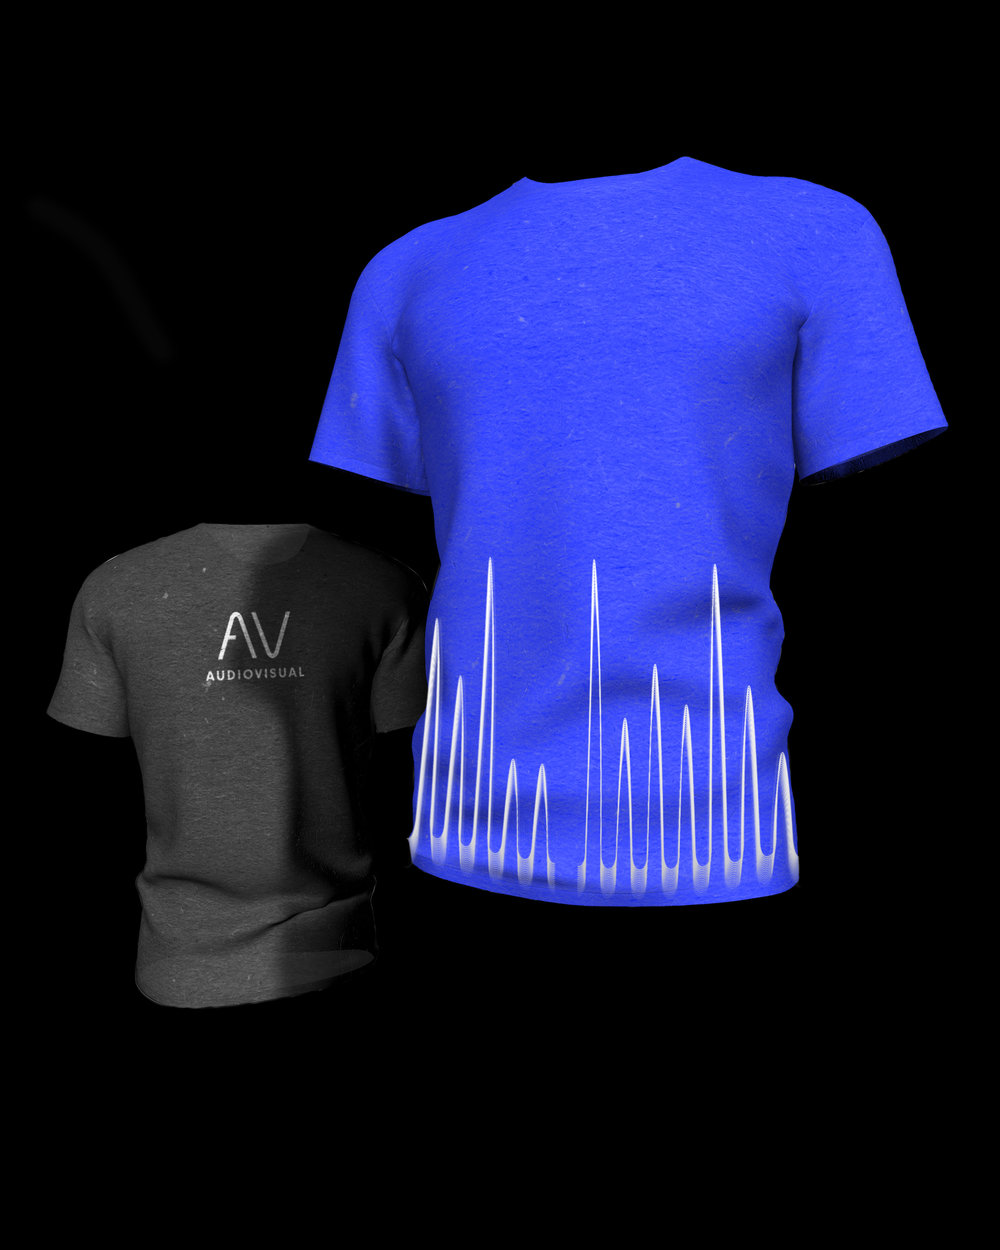 t-shirts available at concerts have secret messages that can be decoded between friends. -